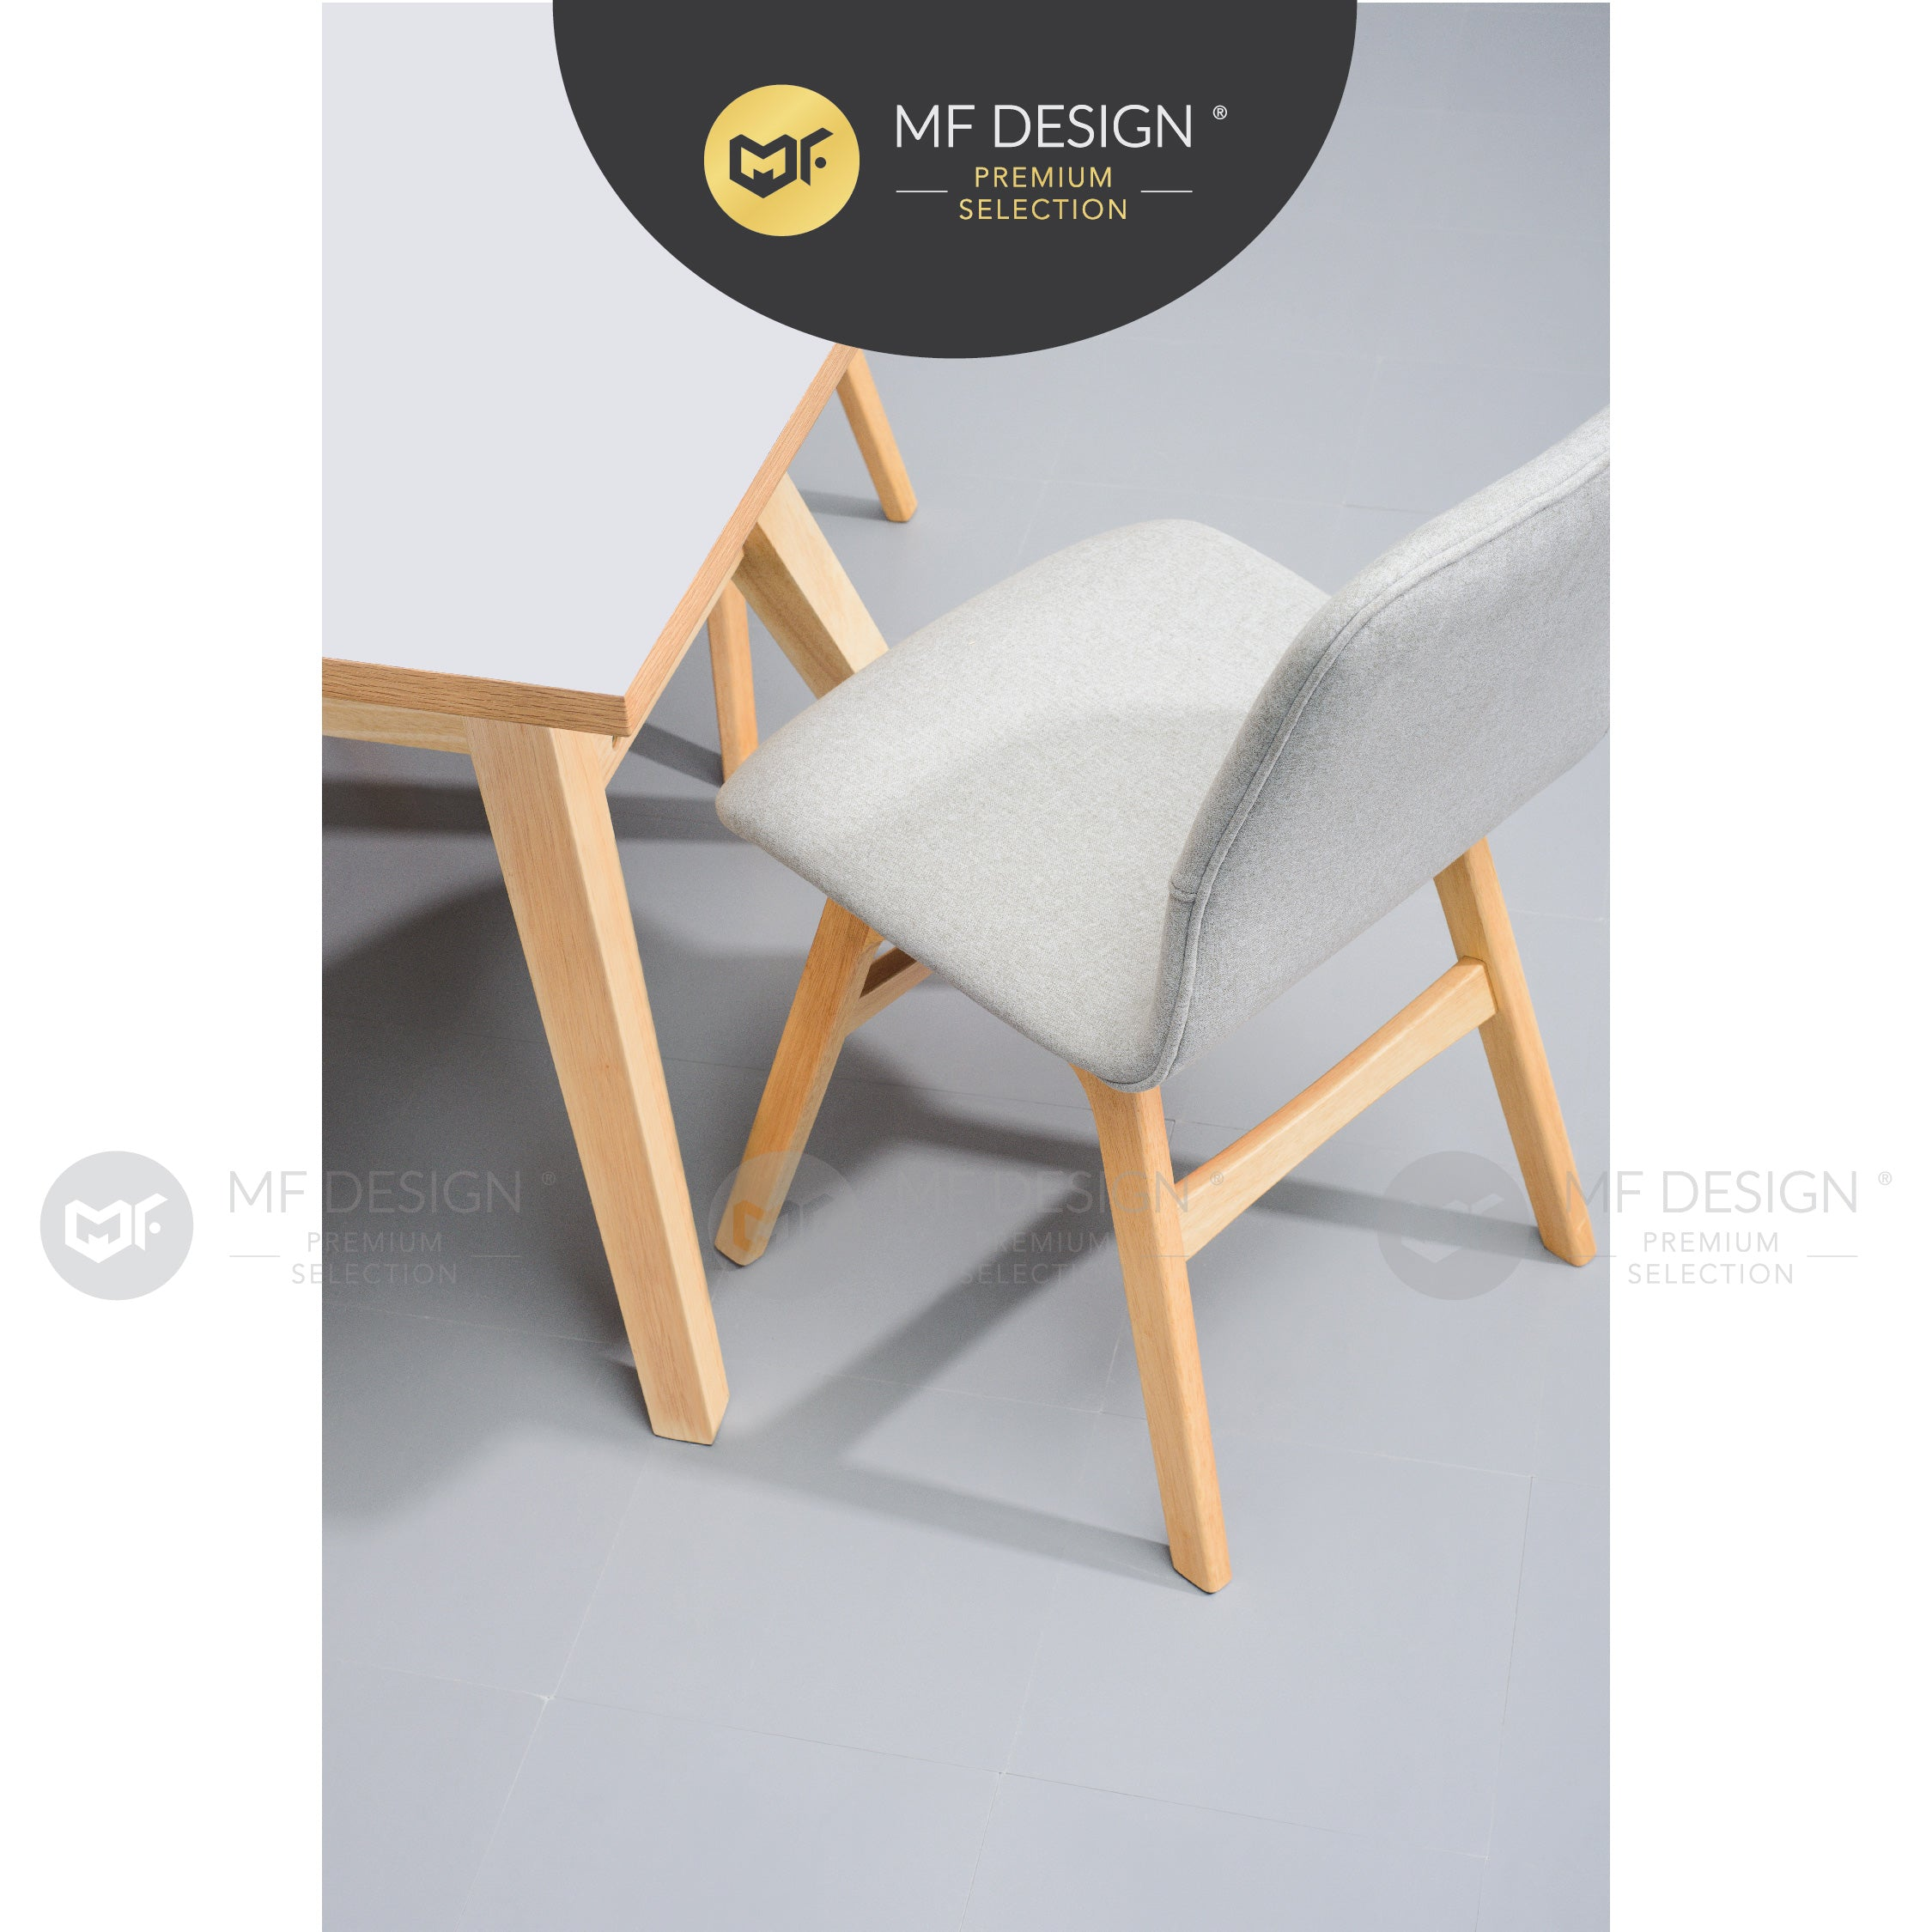 MFD Premium Vivien Dining Table / Meja Makan / Table